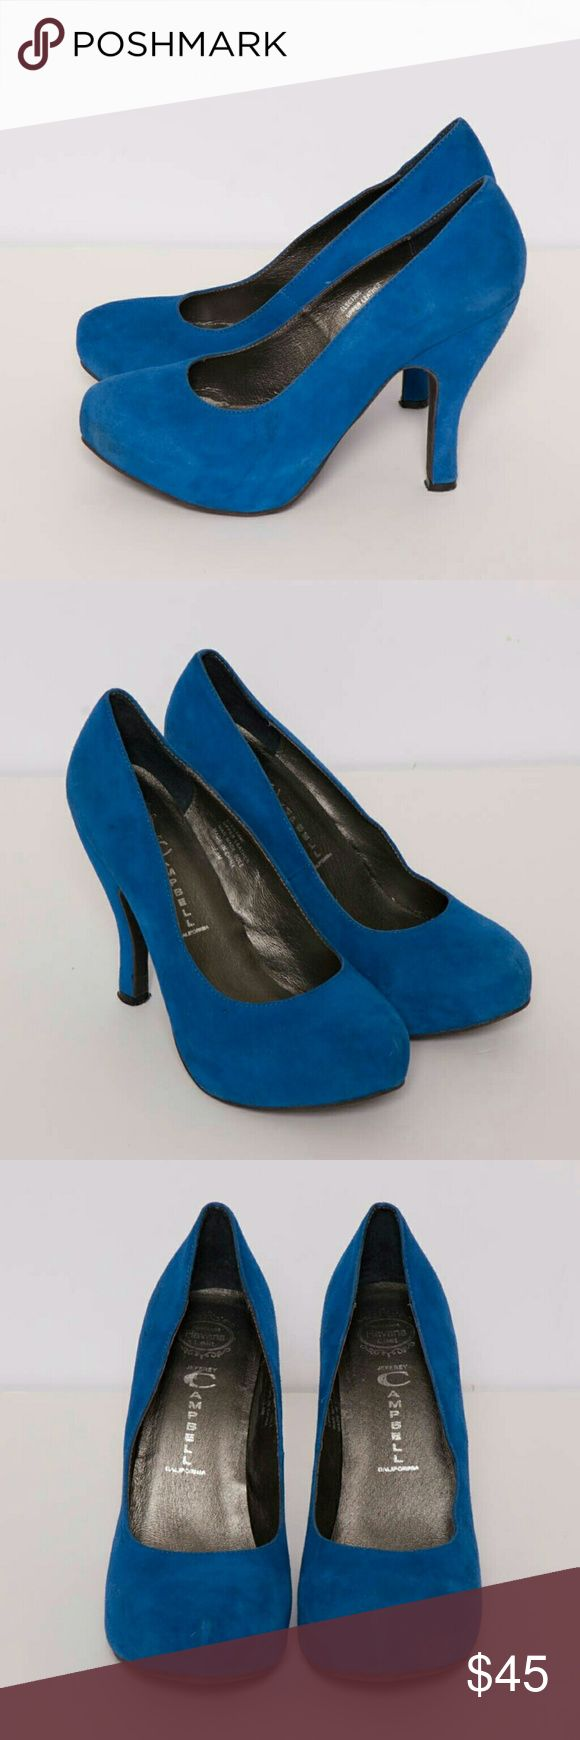 "Jeffrey Campbell Blue Suede Pumps Havana Last ""Electric"" blue suede pumps Almond toe 4.5? Heel Leather upper, manmade sole Made in China  Condition: Shoes are clean and show very little wear; no stains, scuffs, or marks on the leather. Soles show minimal wear. Jeffrey Campbell Shoes Heels"